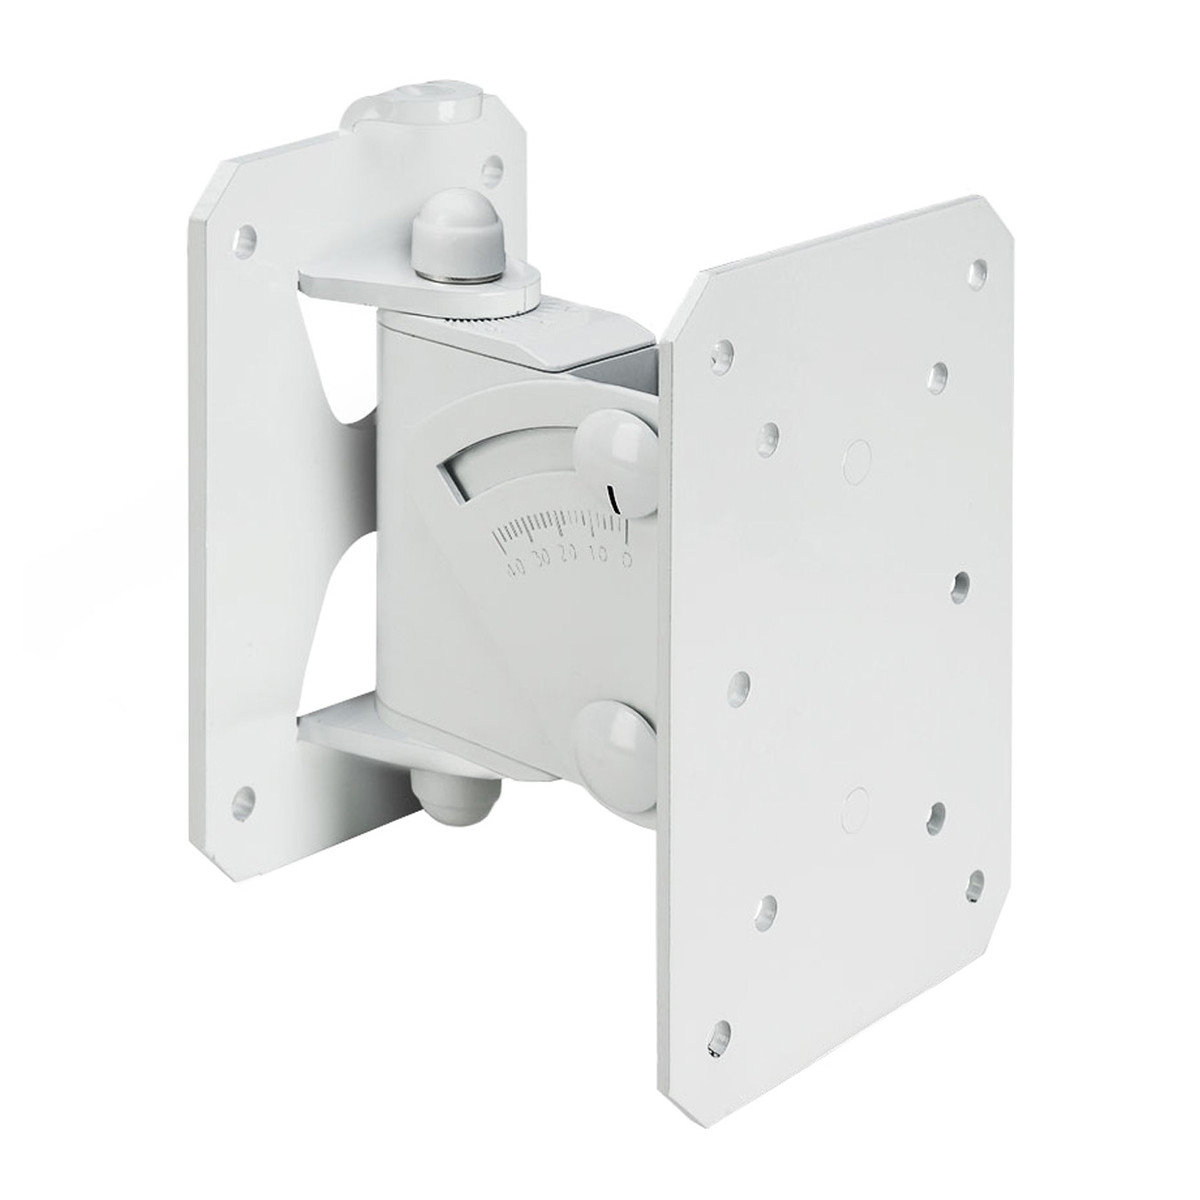 Gravity Gspwmbs20w Tilt And Swivel Speaker Wall Mount